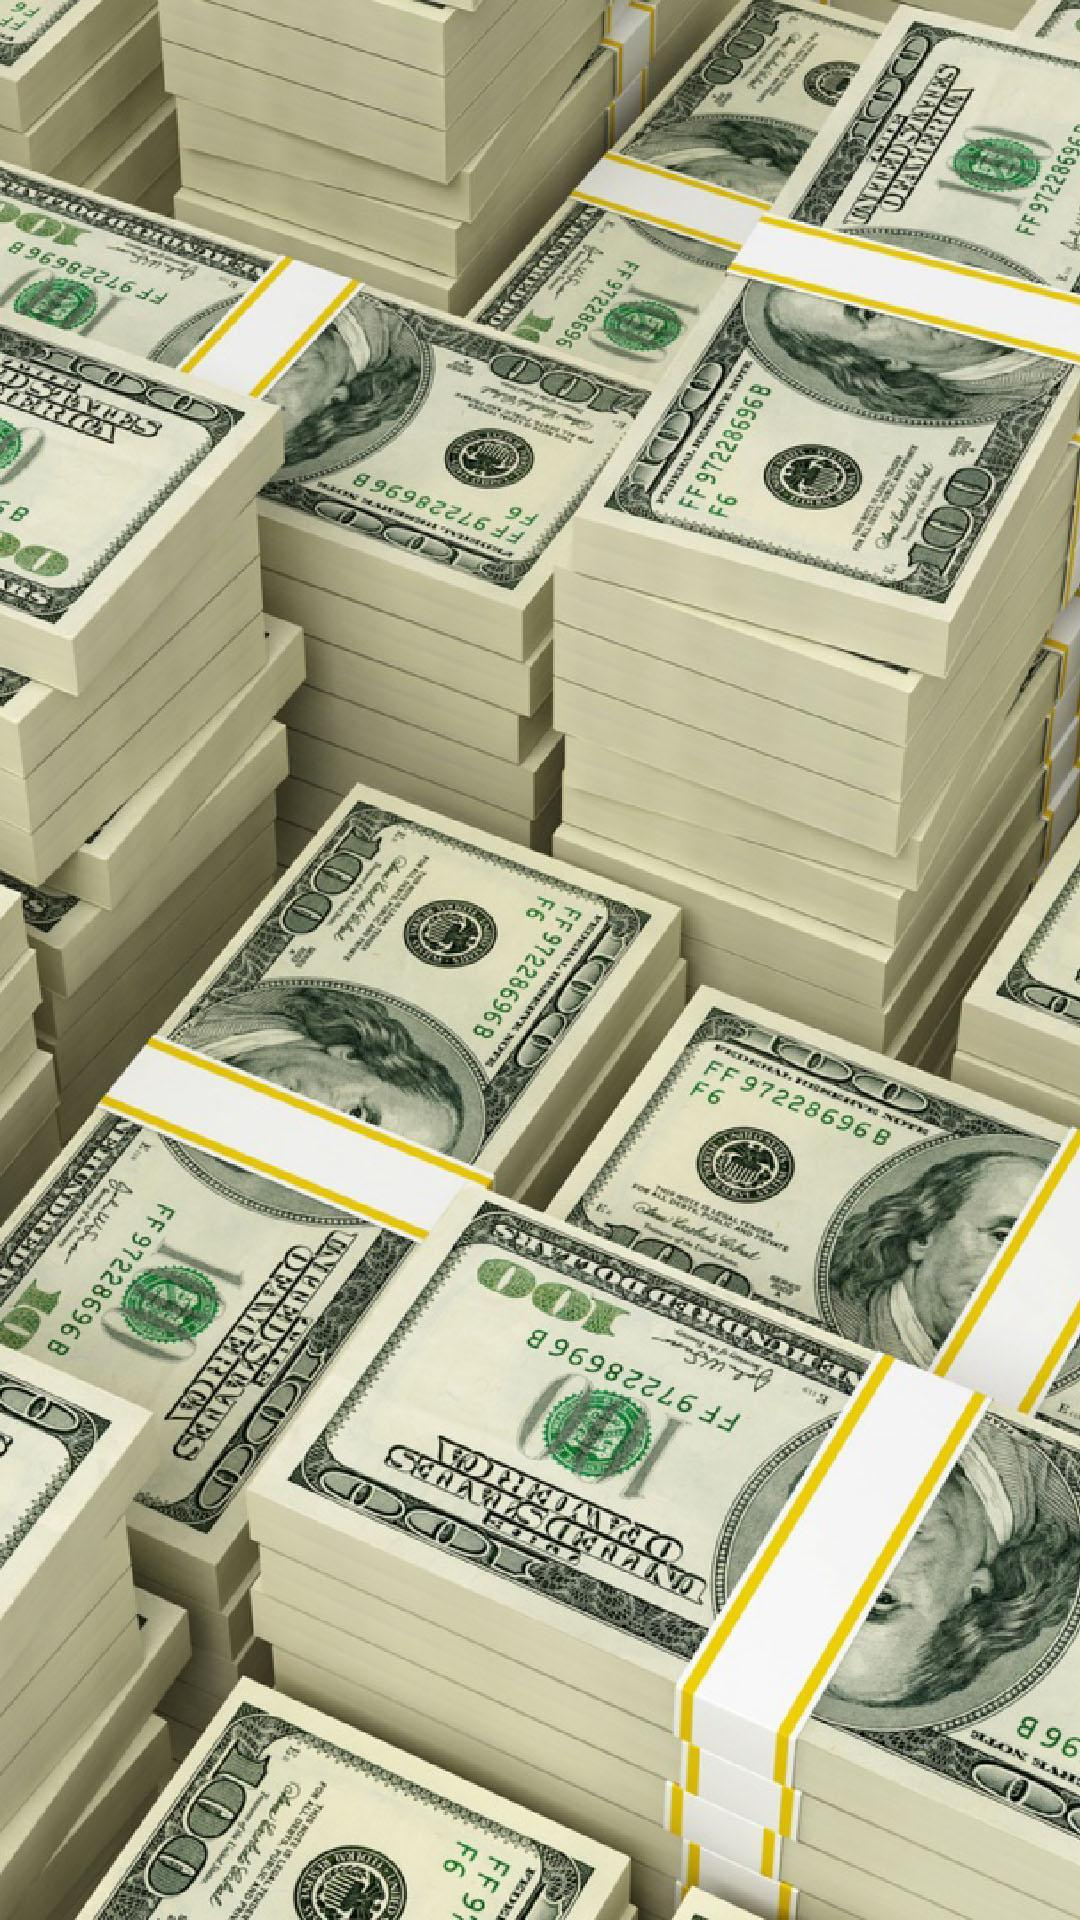 Money Wallpapers for Android   APK Download 1080x1920